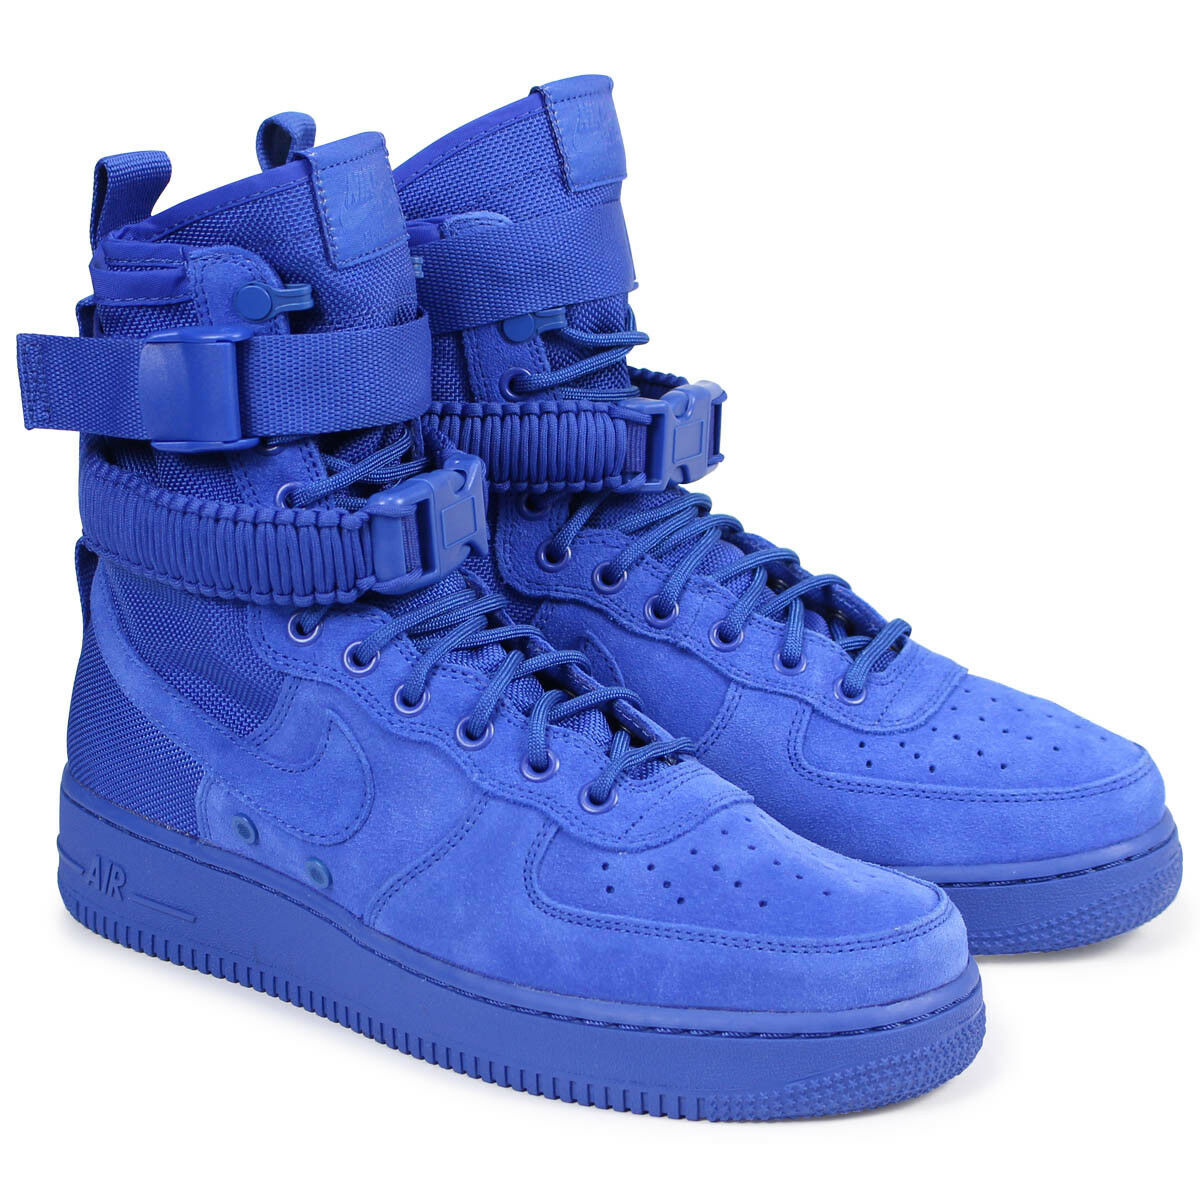 new product 2e01c 56fef NEW Nike SF AF1 Special Forces Air Force One 1 1 1 Men s Sz 15 Game